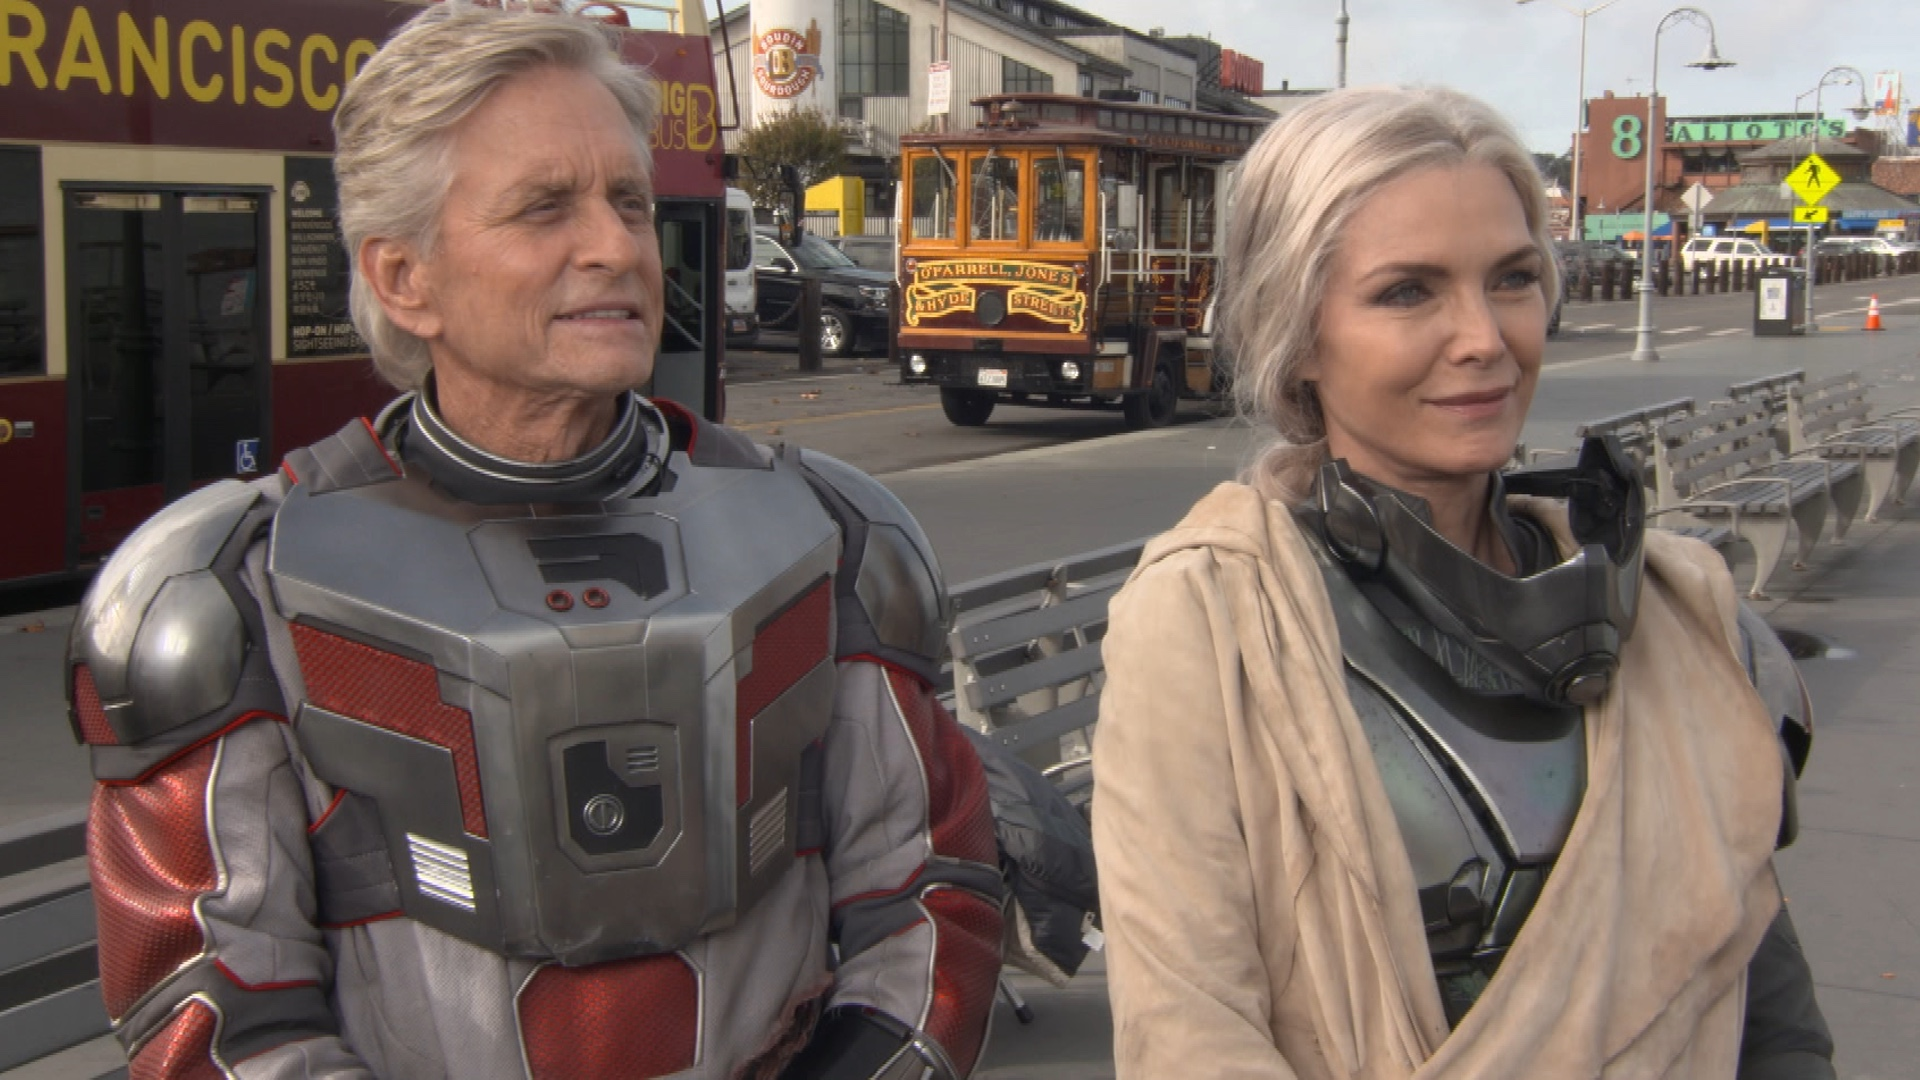 Hank (L) & Janet (R) Pym played by Michael Douglass and Michelle Pfeiffer